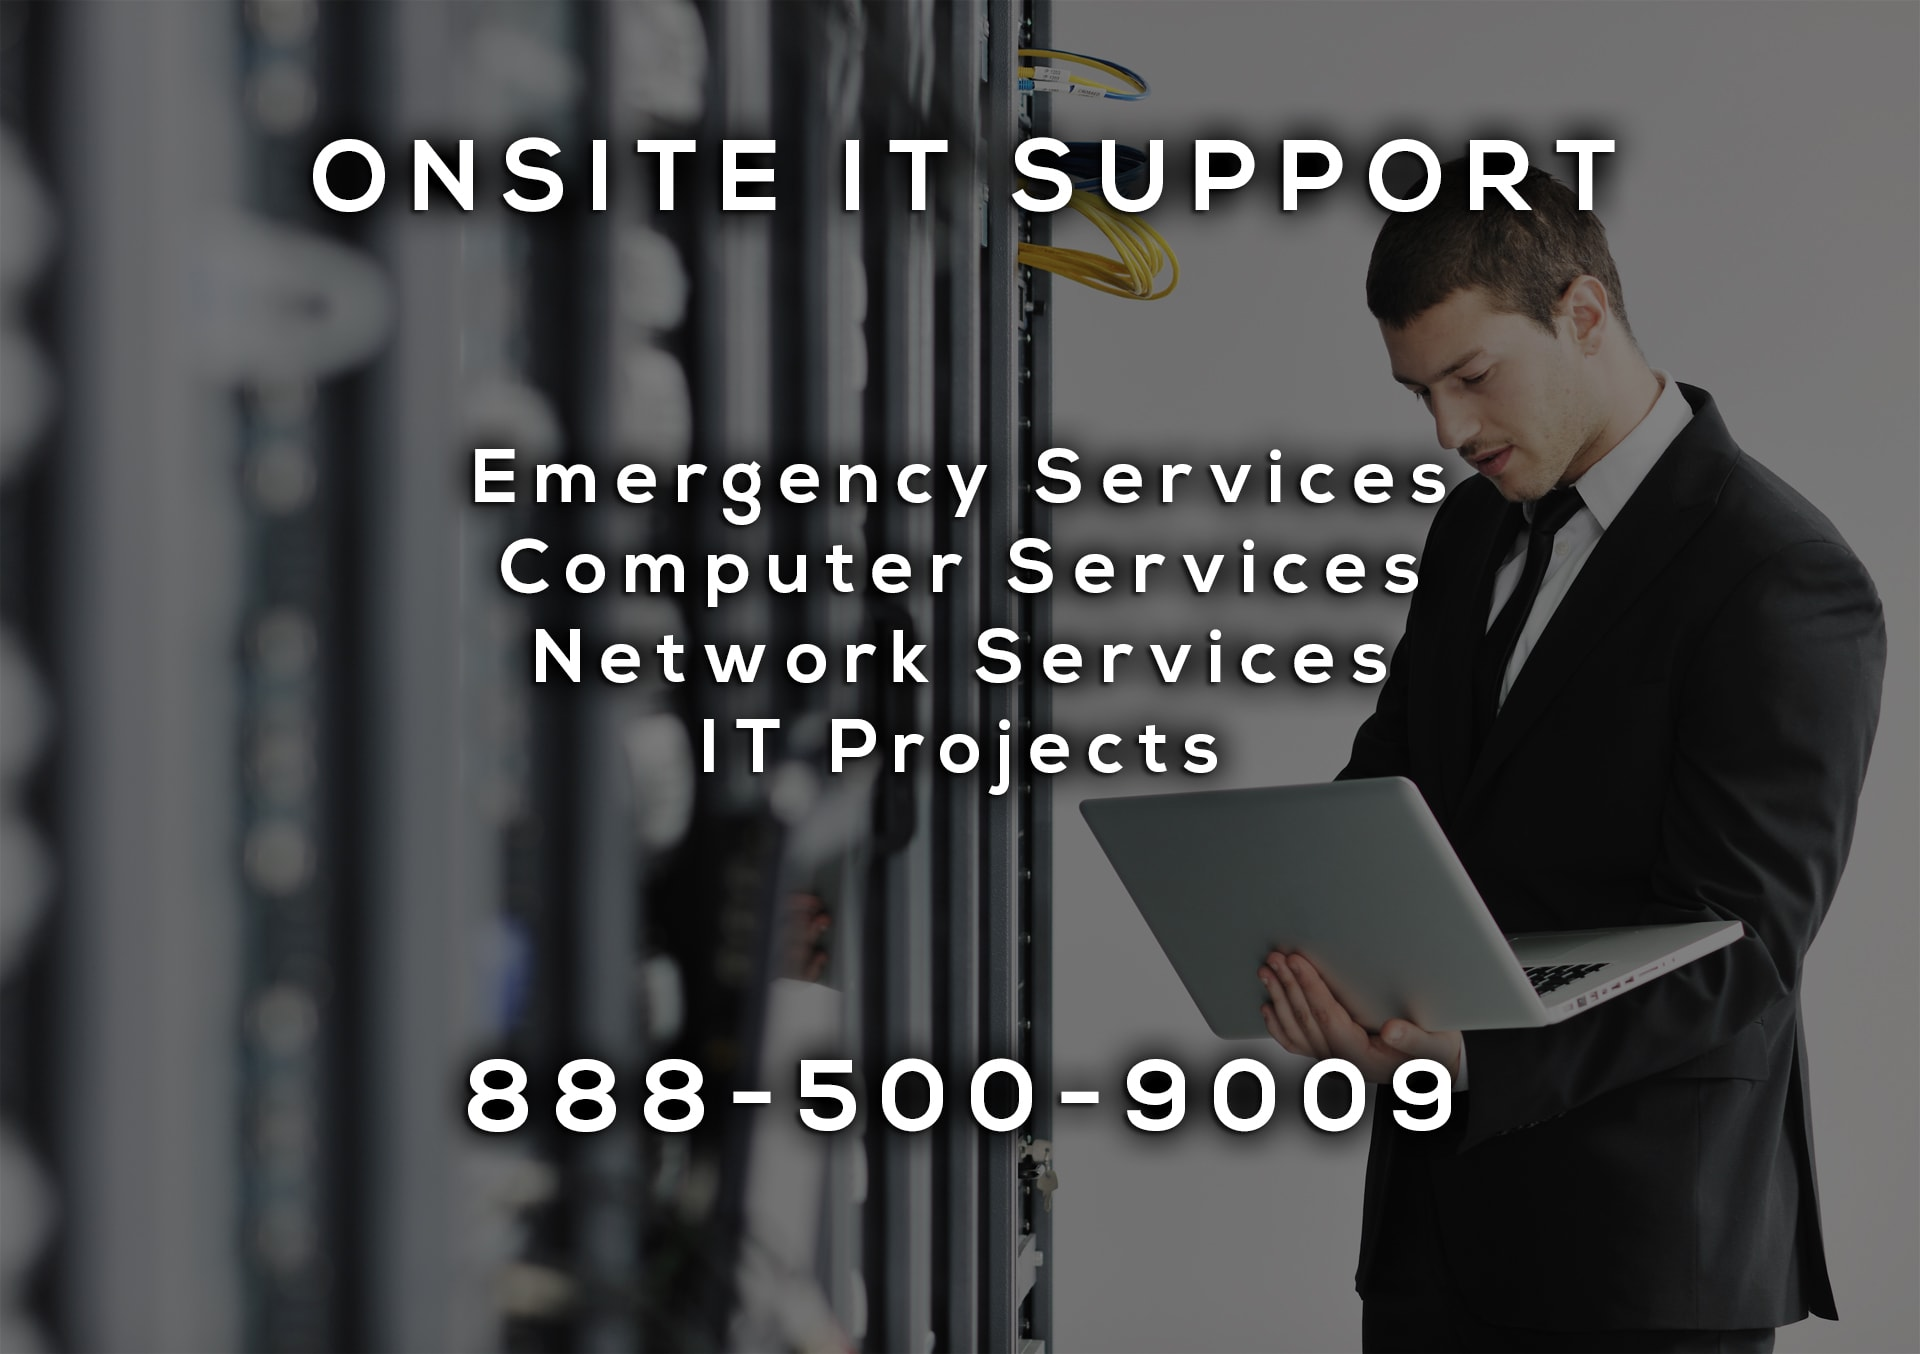 on site it support